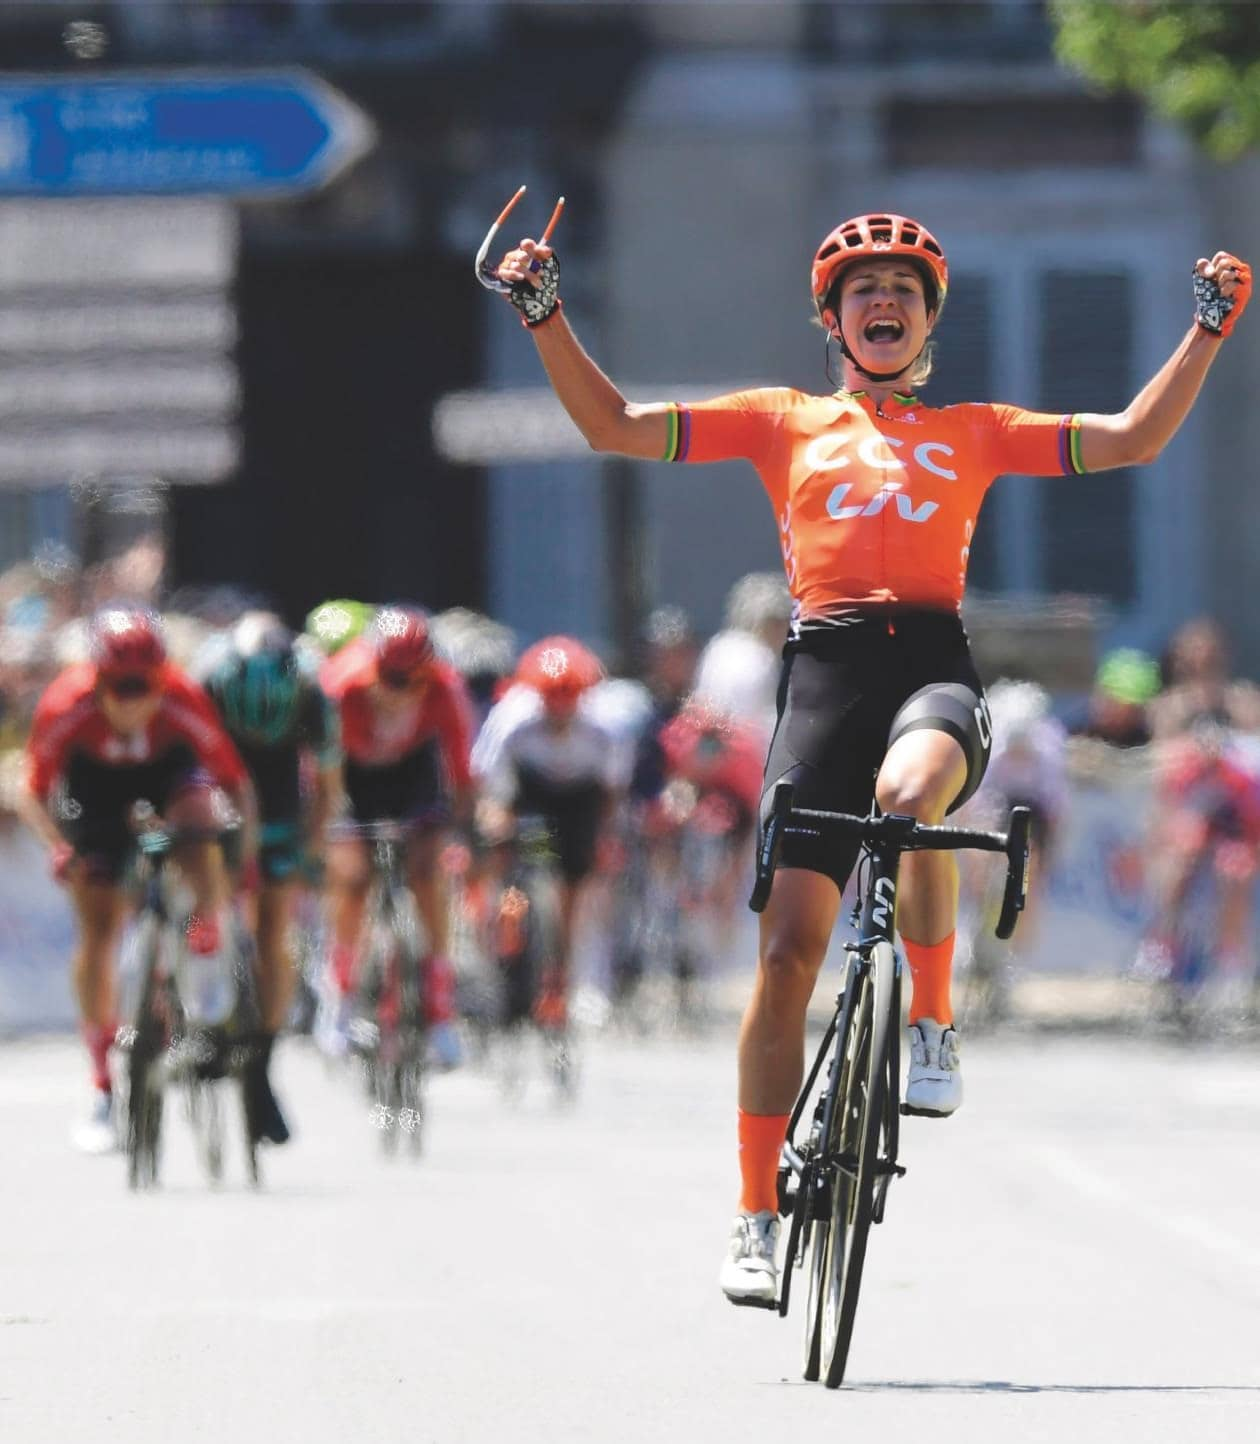 ASO takes first step towards women's stage race